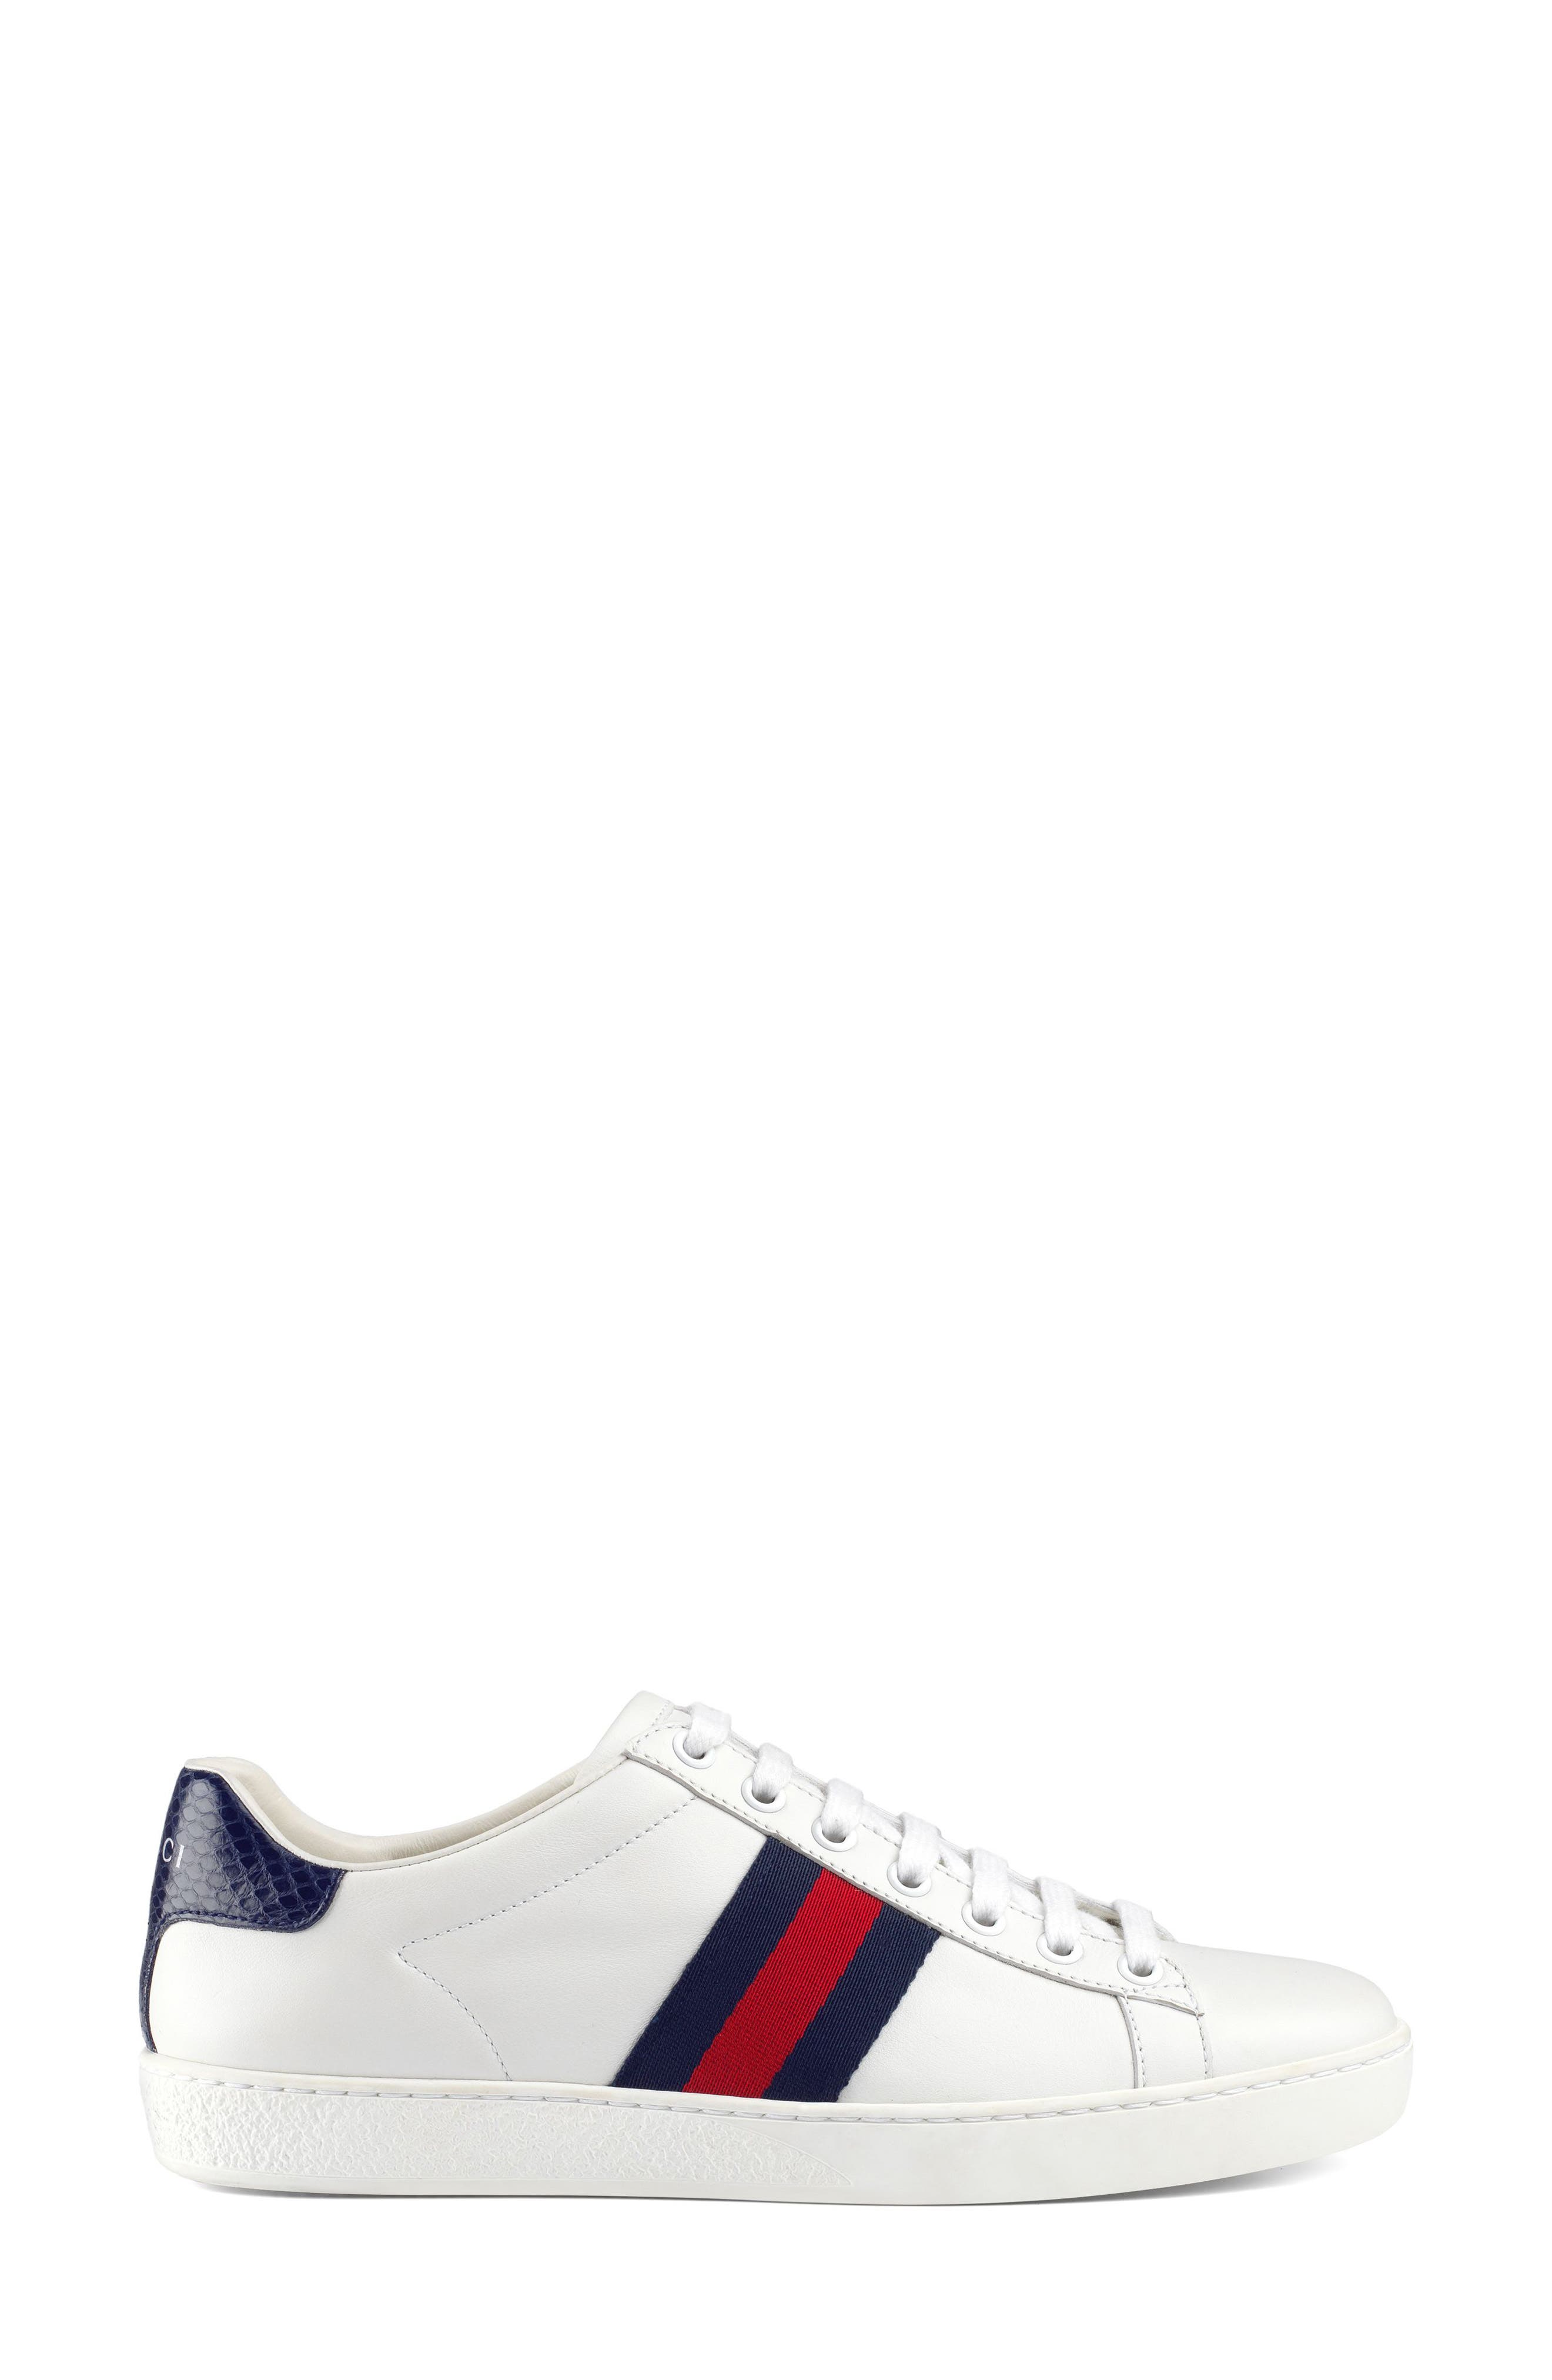 GUCCI,                             'New Ace' Sneaker,                             Alternate thumbnail 2, color,                             101